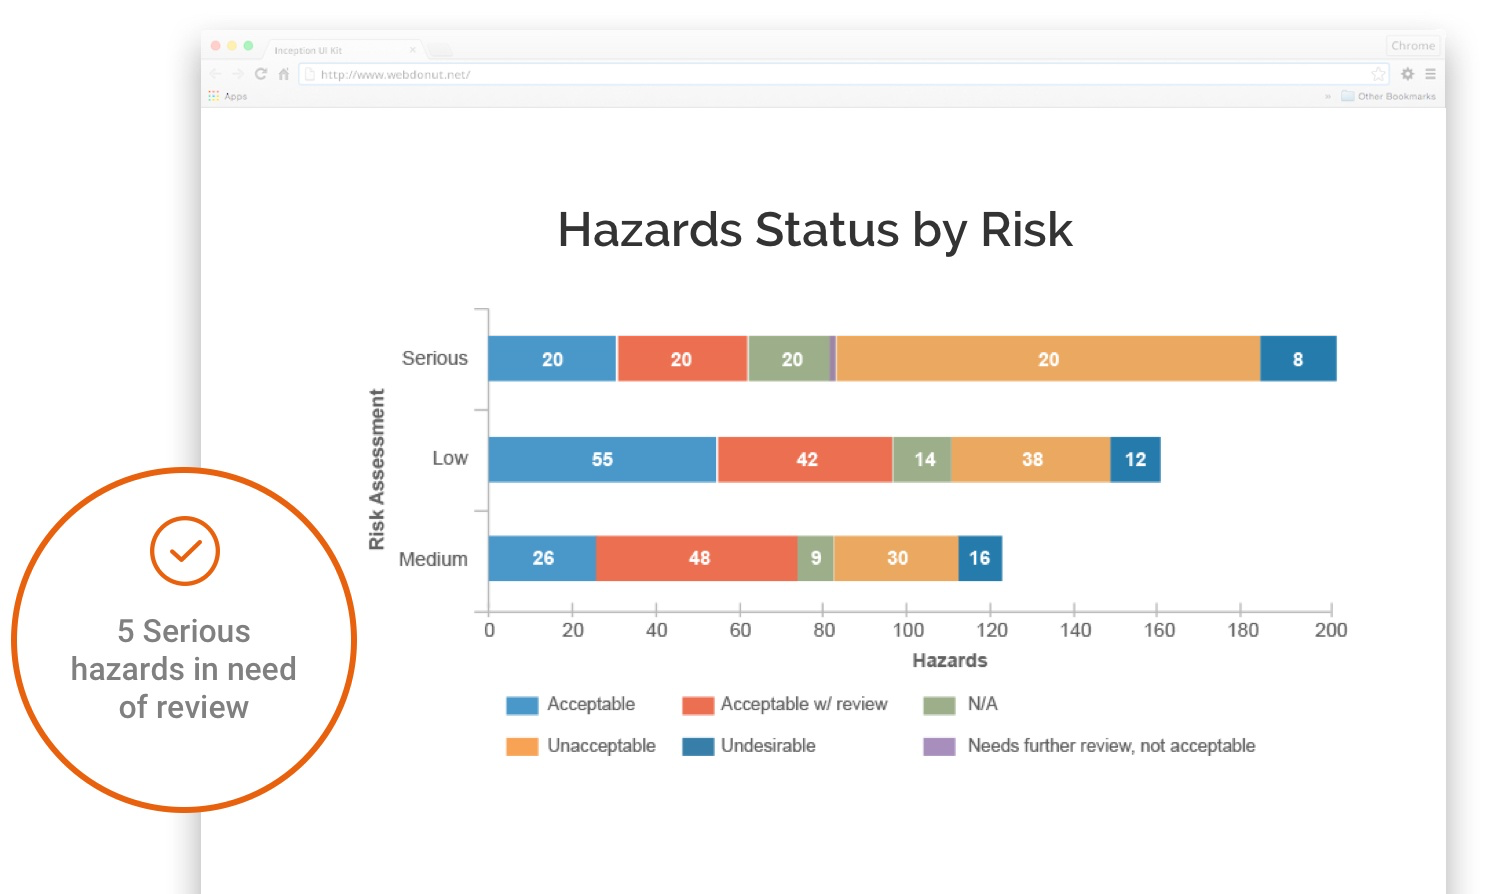 Track serious workplace hazards and get notified when new ones are recorded